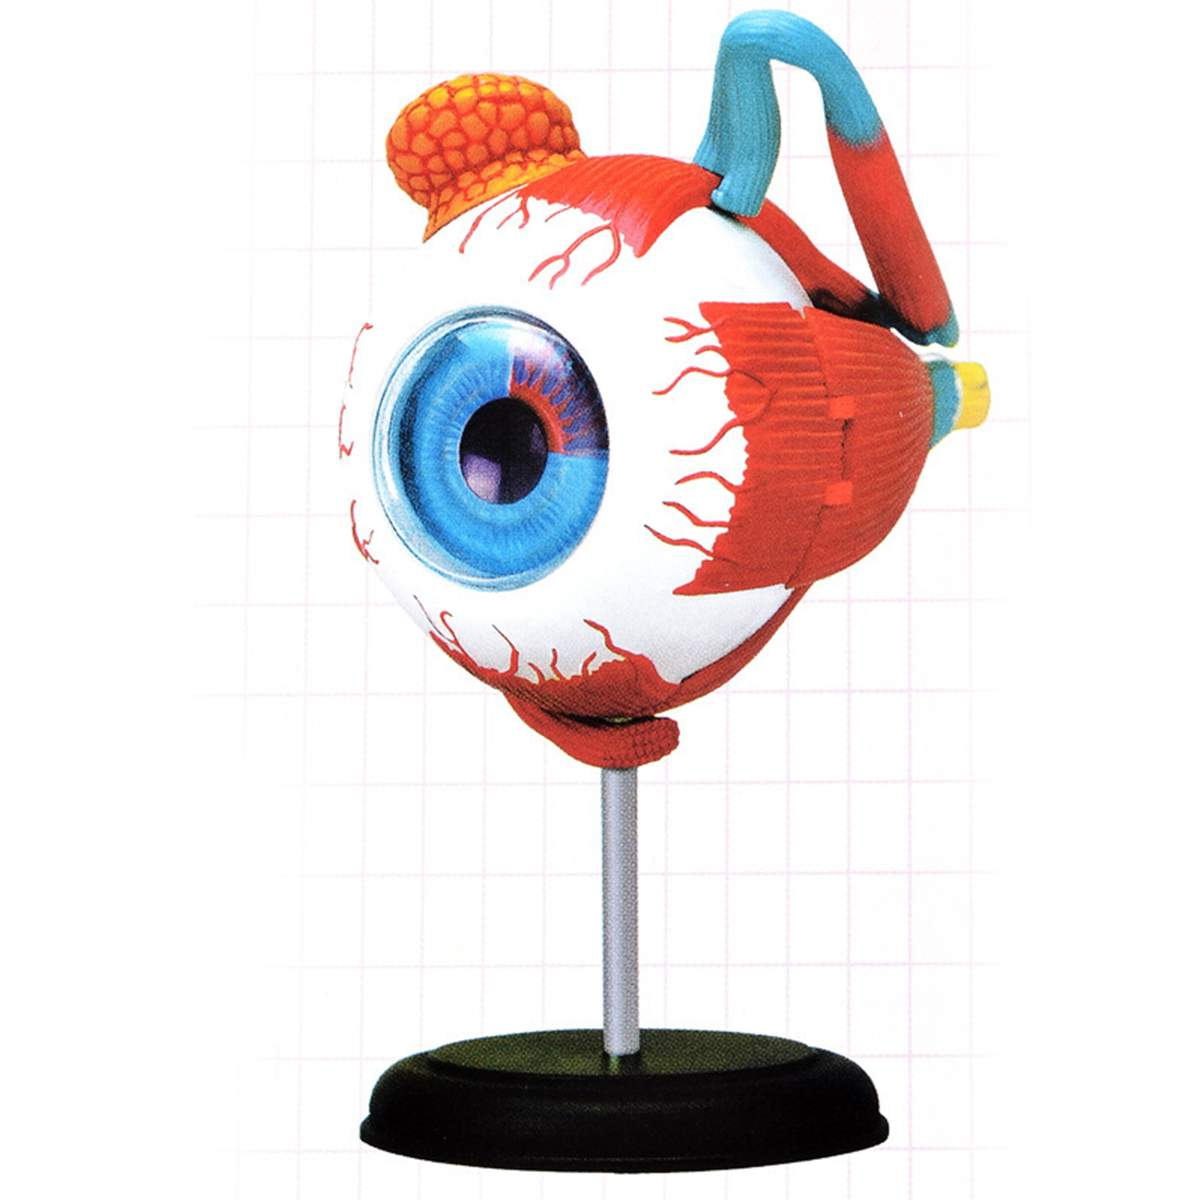 4D Anatomical Human Eyes Model Anatomy Medical Science Eye Ball Model School Educational Human Eyes Teaching Accessory Part New4D Anatomical Human Eyes Model Anatomy Medical Science Eye Ball Model School Educational Human Eyes Teaching Accessory Part New